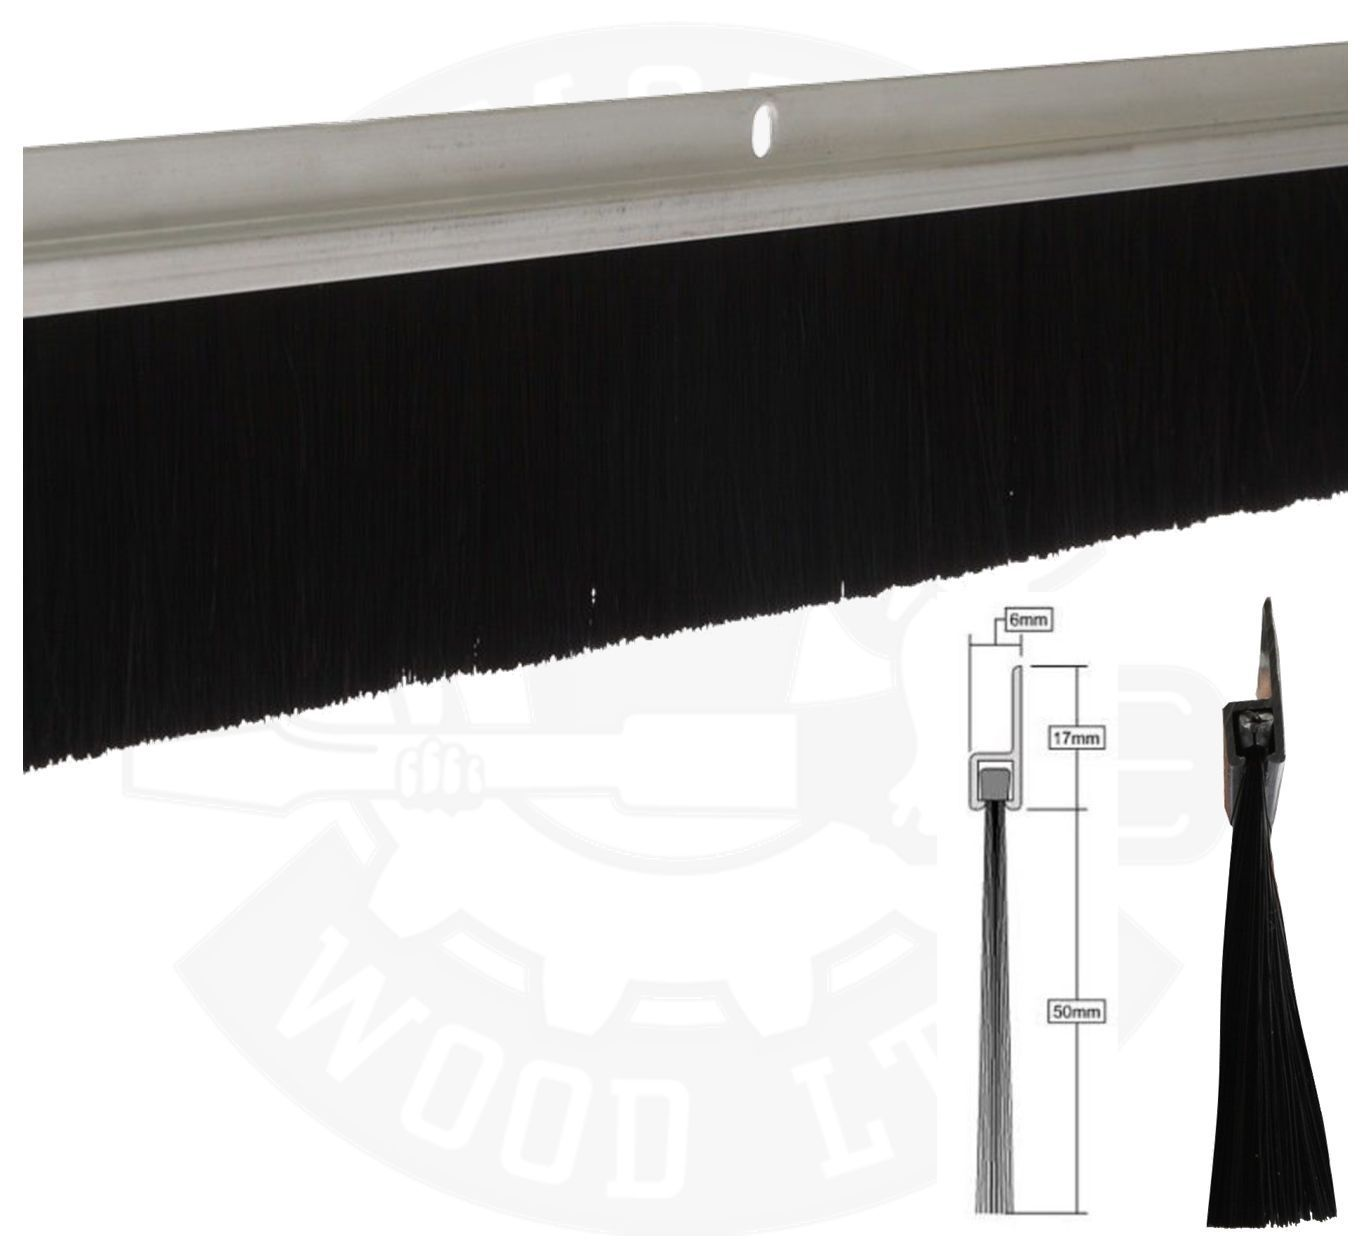 Garage Door Draft Excluder Brush Httpvoteno123 Pinterest